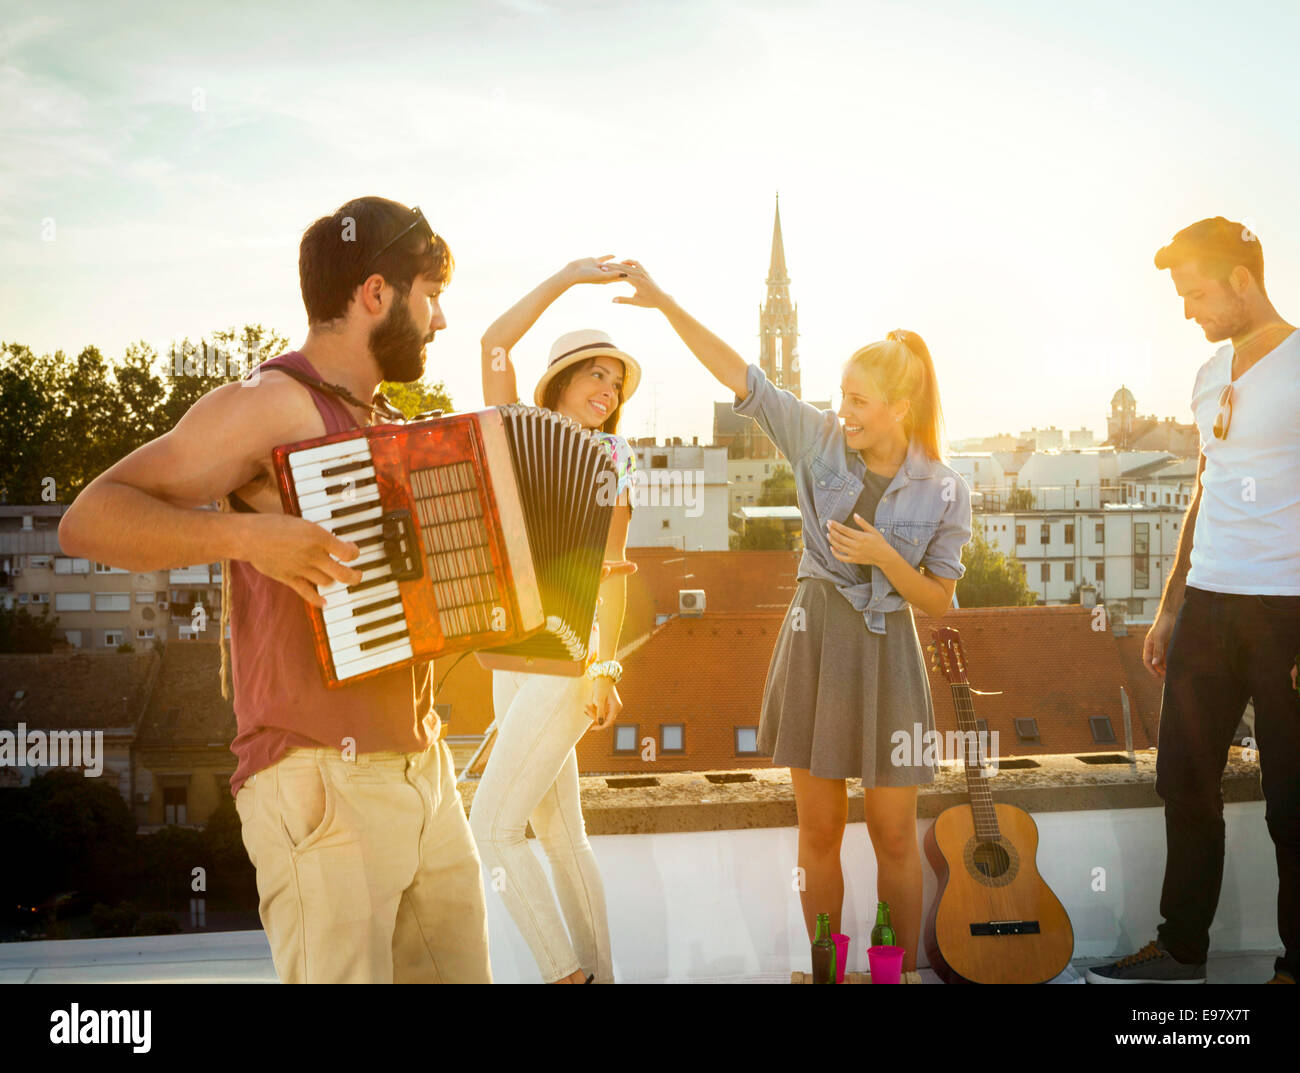 Young people having fun at rooftop party Photo Stock